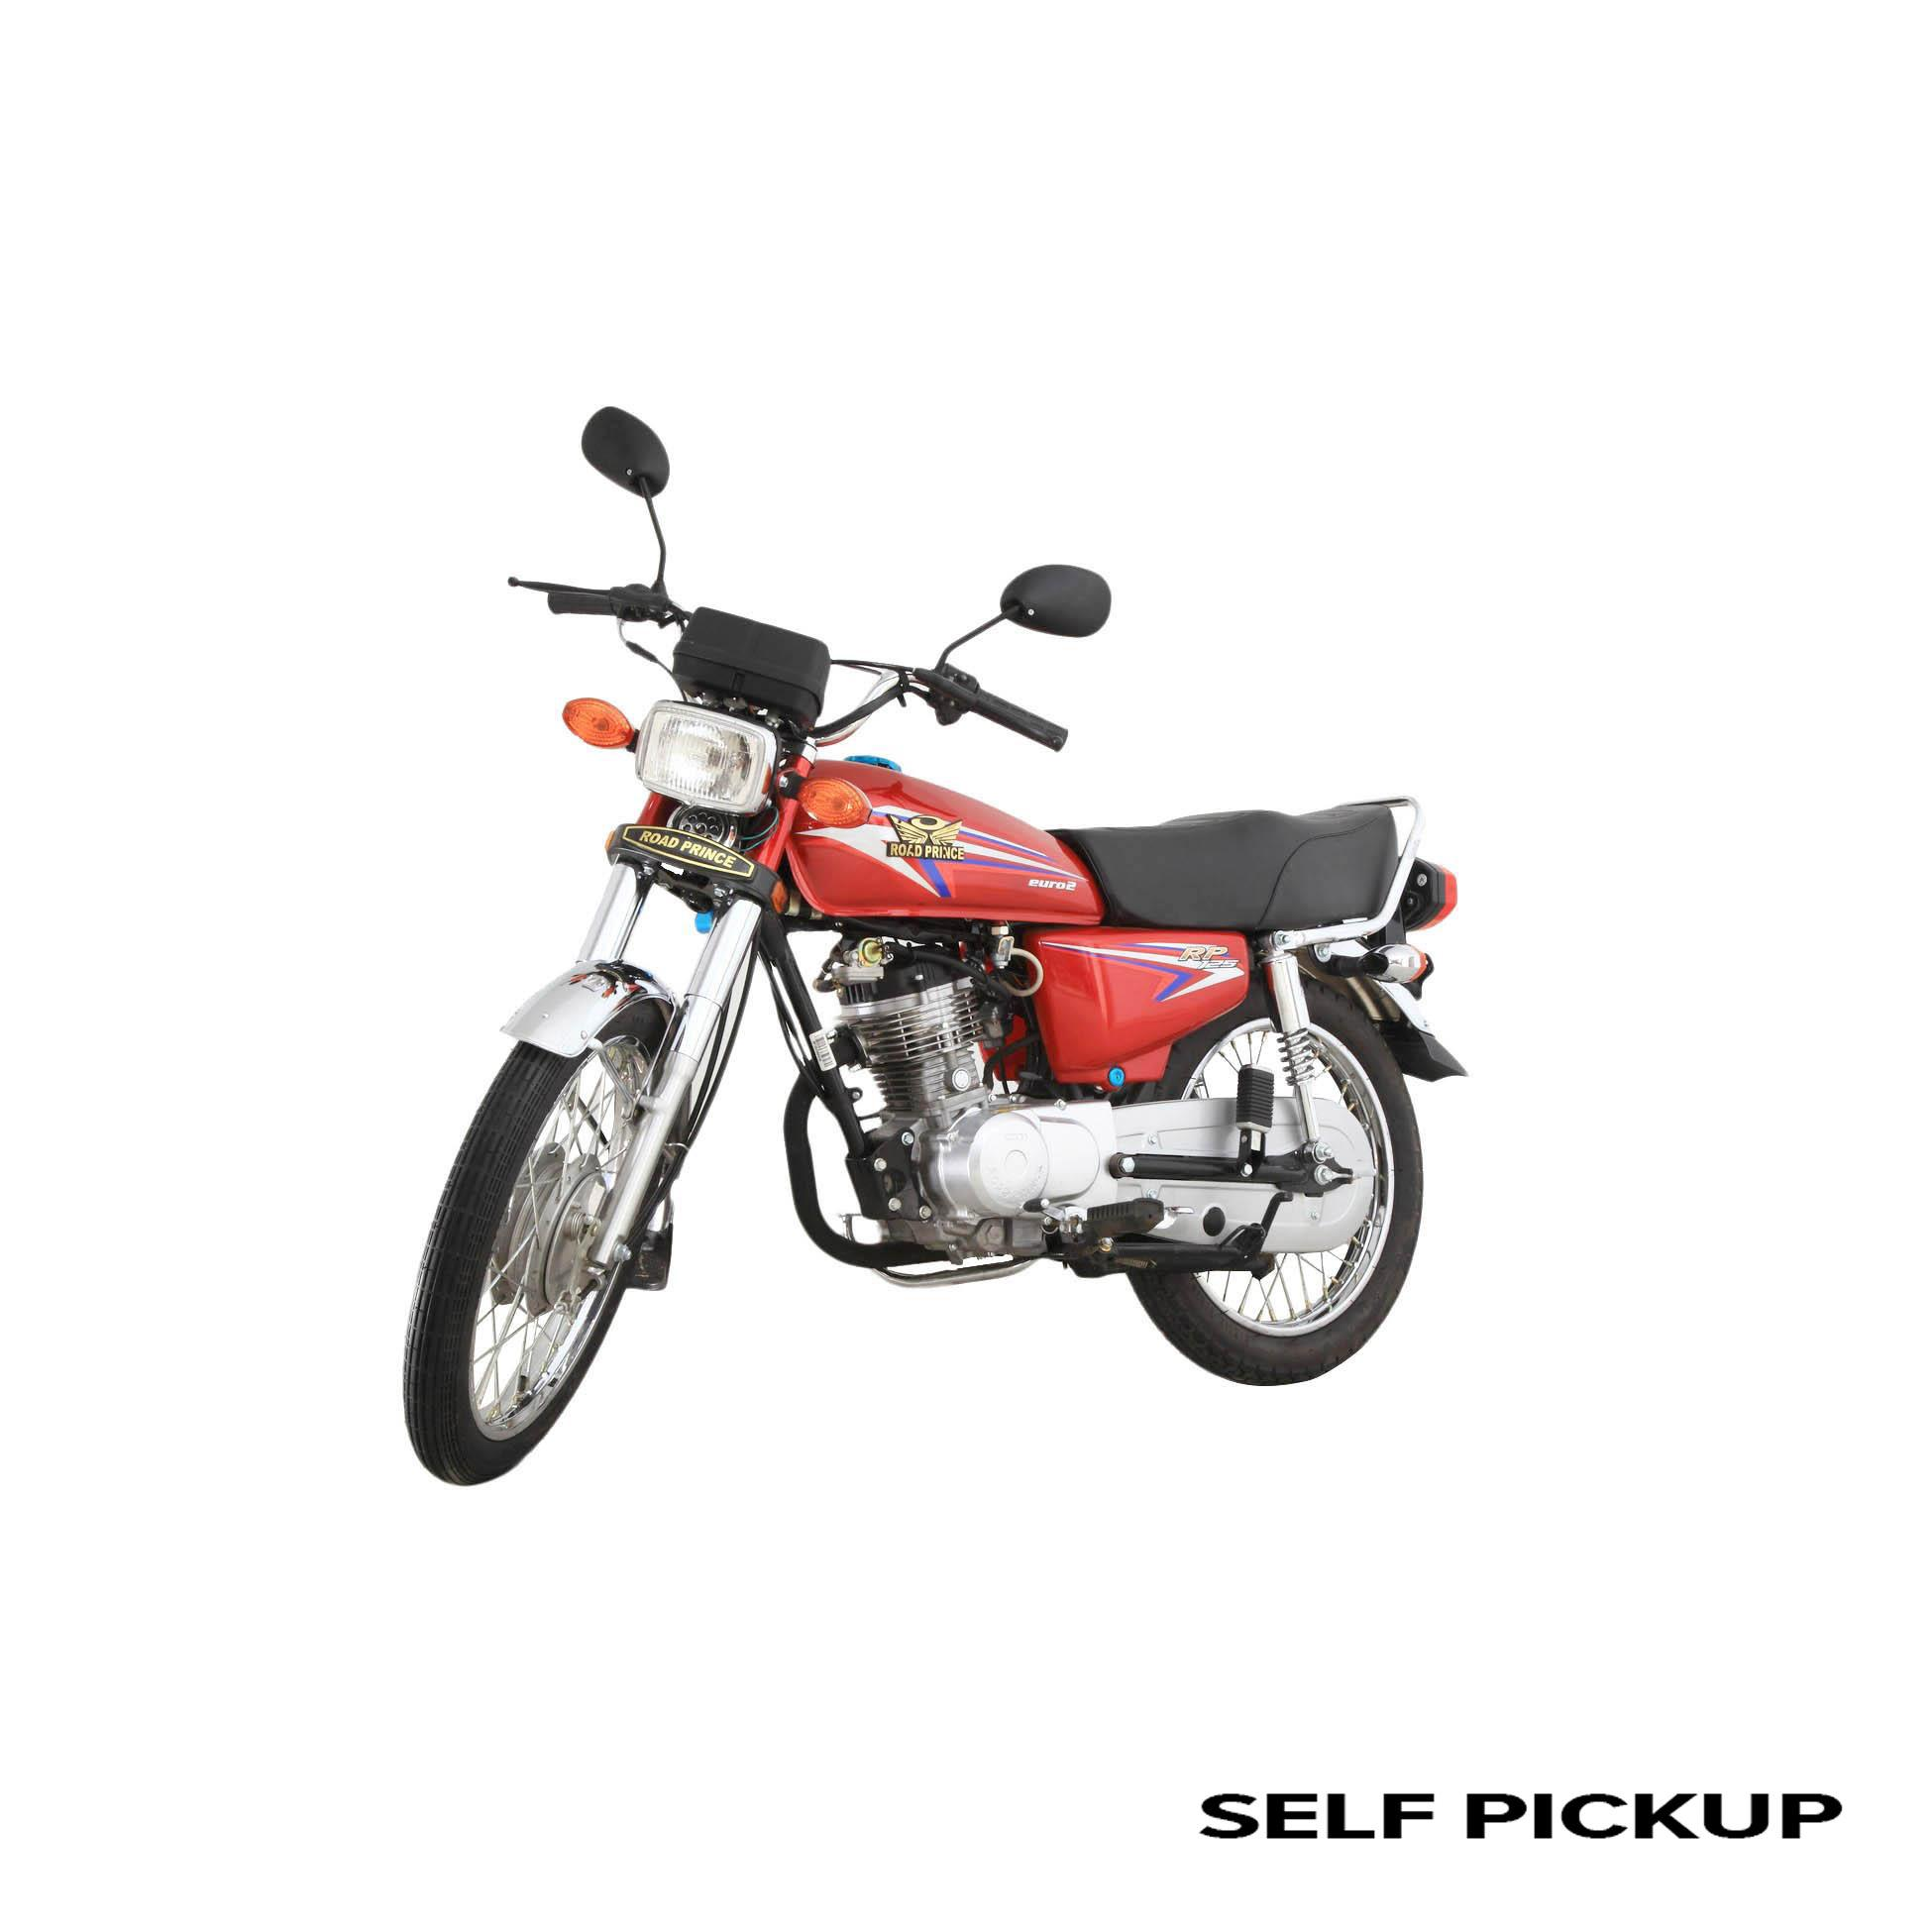 Buy Motorcycle Spare Parts Accessories Online In Pakistan Honda Blue Book Road Prince Rp 125cc 2018 Red Colour Lahore Only